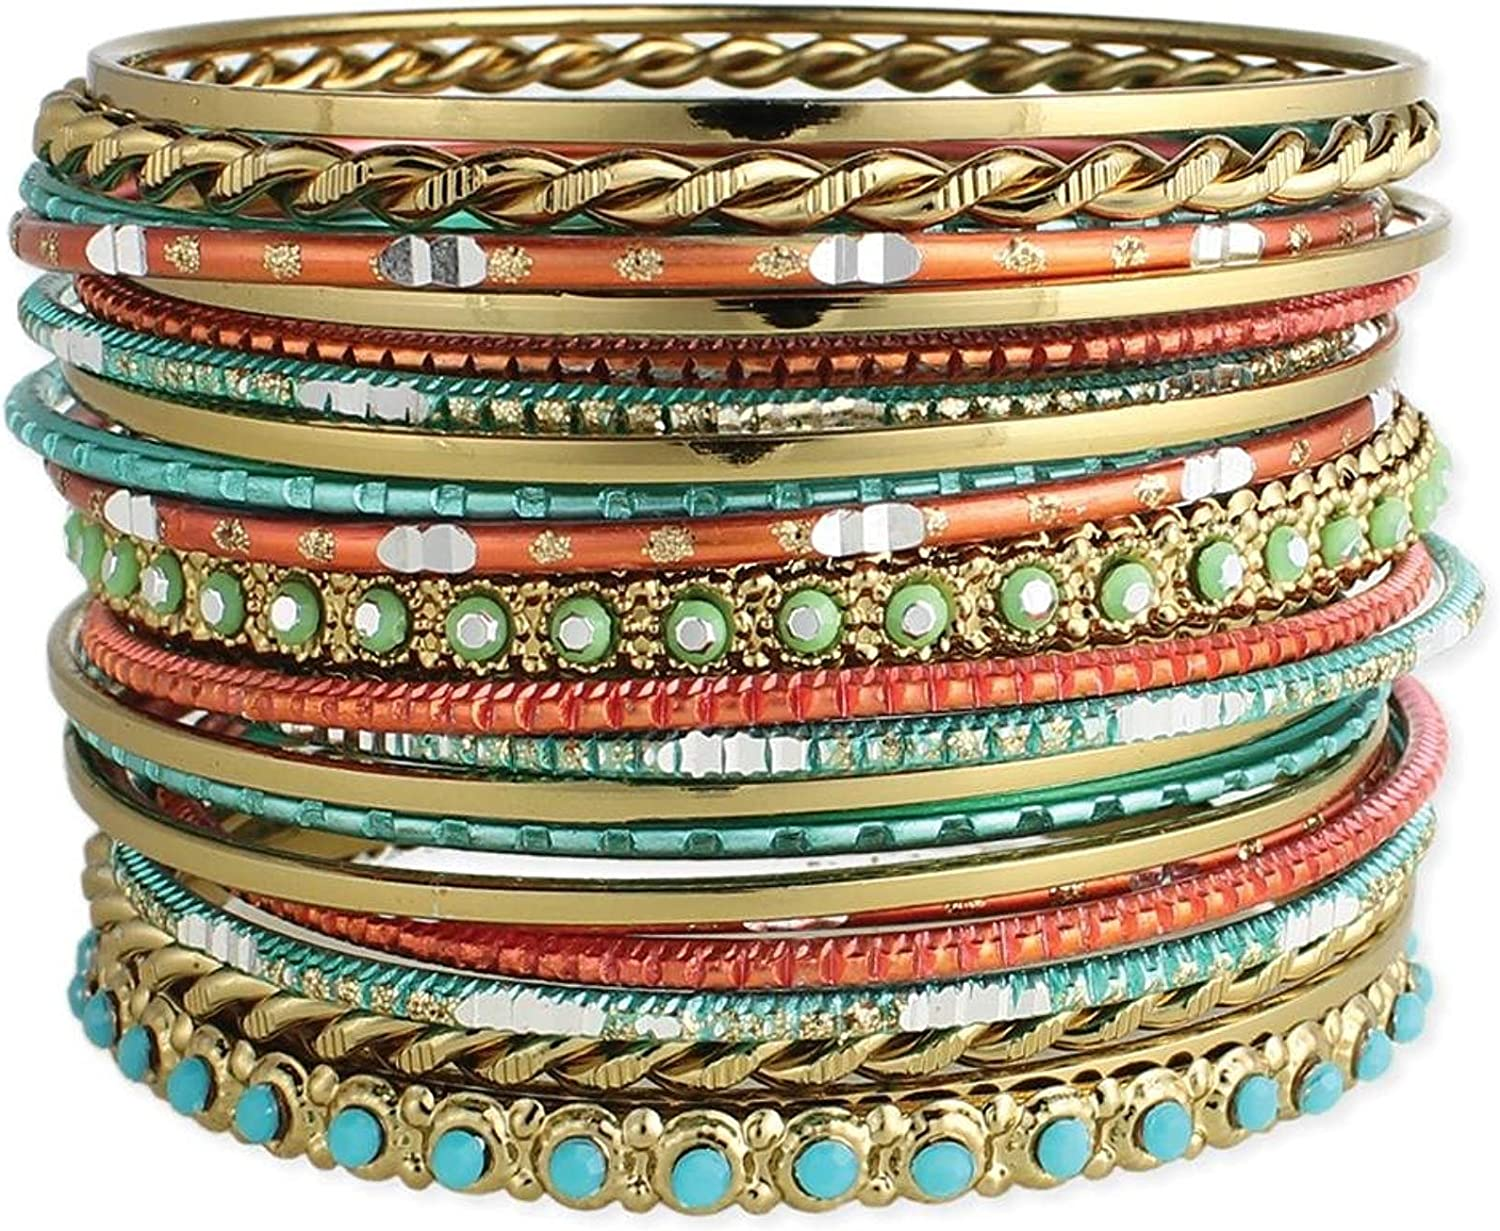 Set of 22 Golden, Turquoise and Coral Bangle Bracelets